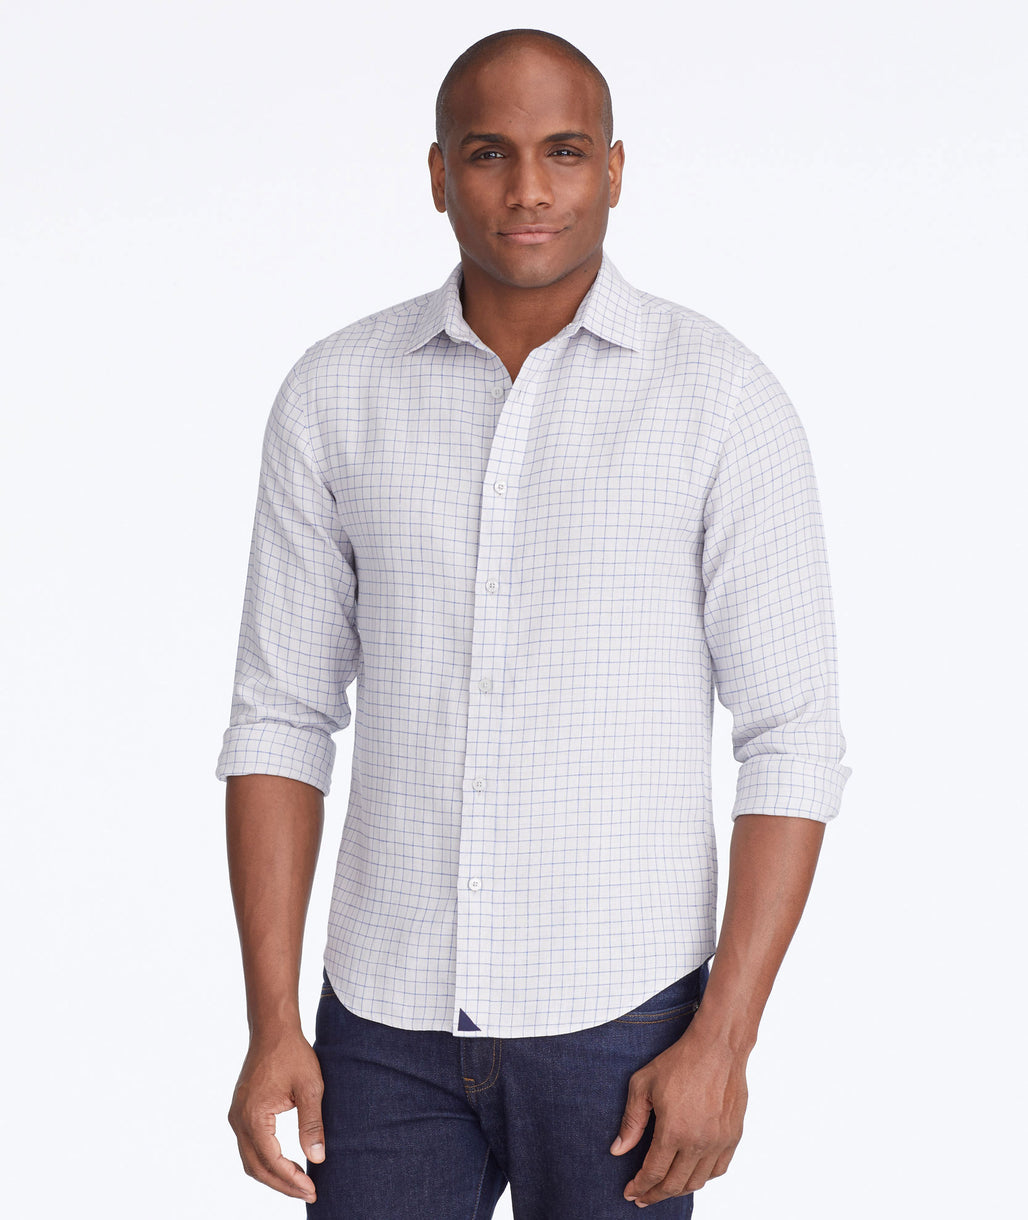 Model wearing a Grey Wrinkle-Resistant Linen Biltmore Shirt